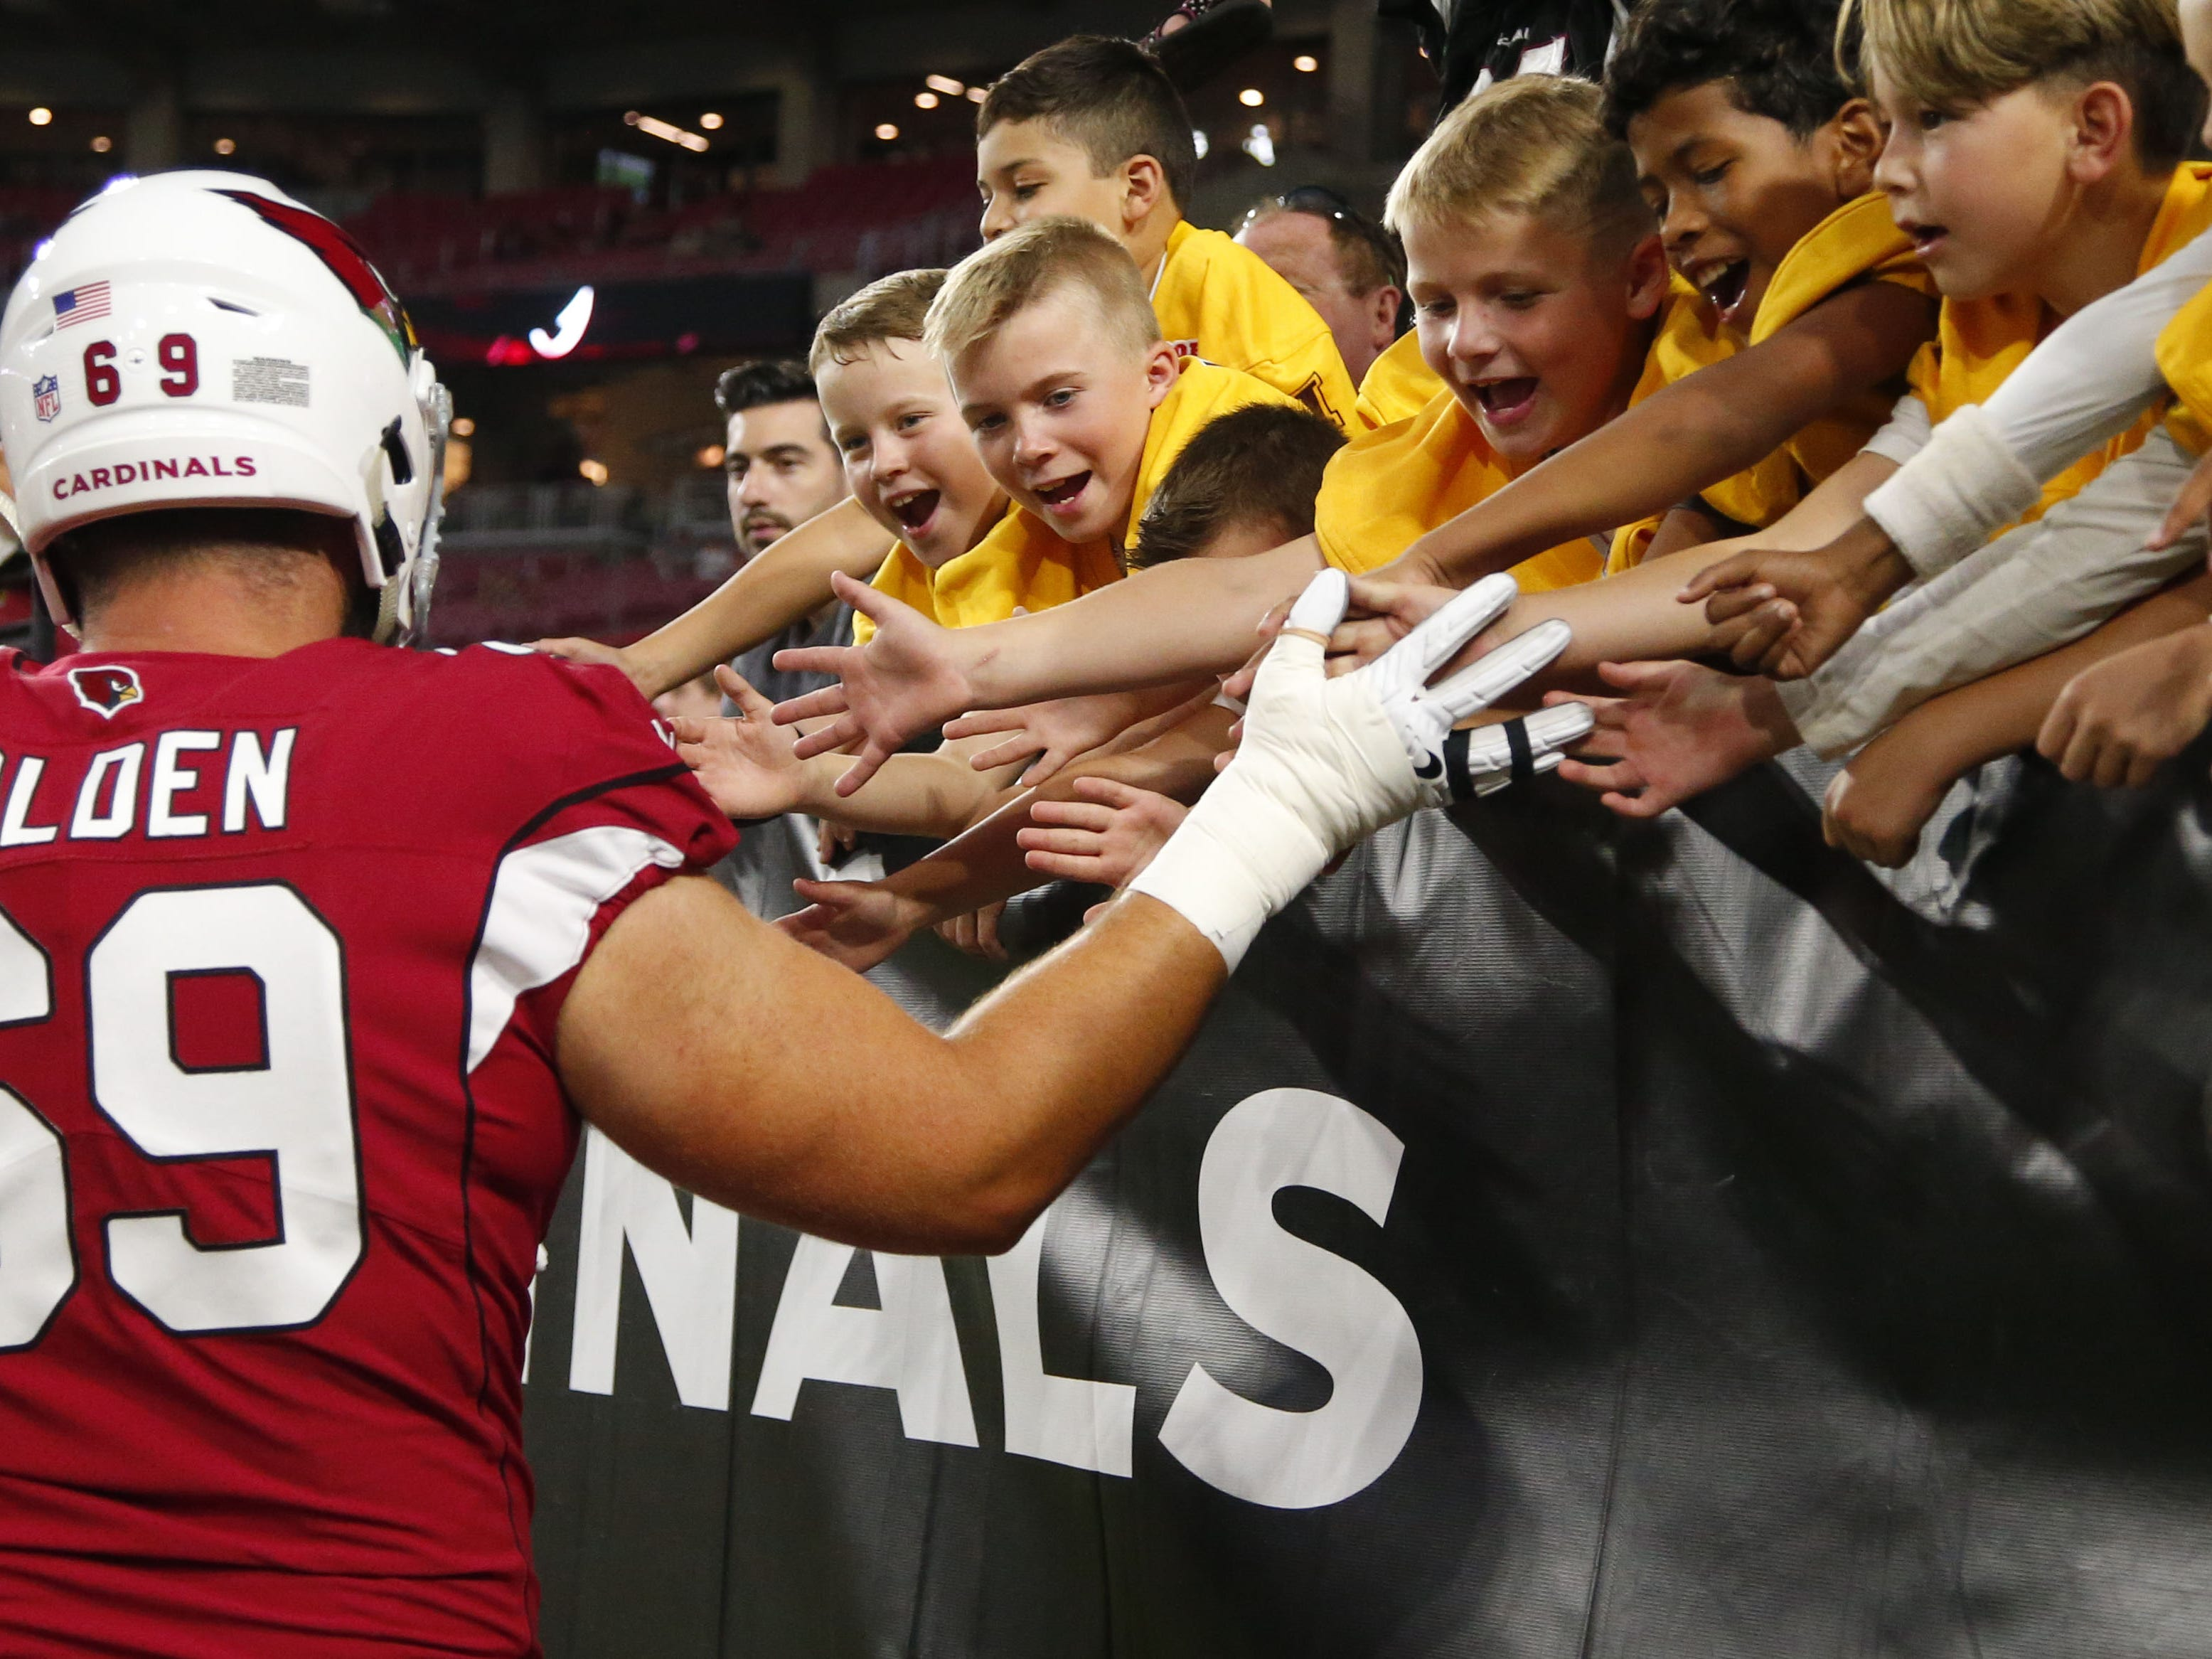 Arizona Cardinals offensive tackle Will Holden (69) high fives the players from the Hombres Pop Warner football team before a NFL game against the Denver Broncos at the University of Phoenix Stadium in Glendale on August 30, 2018.